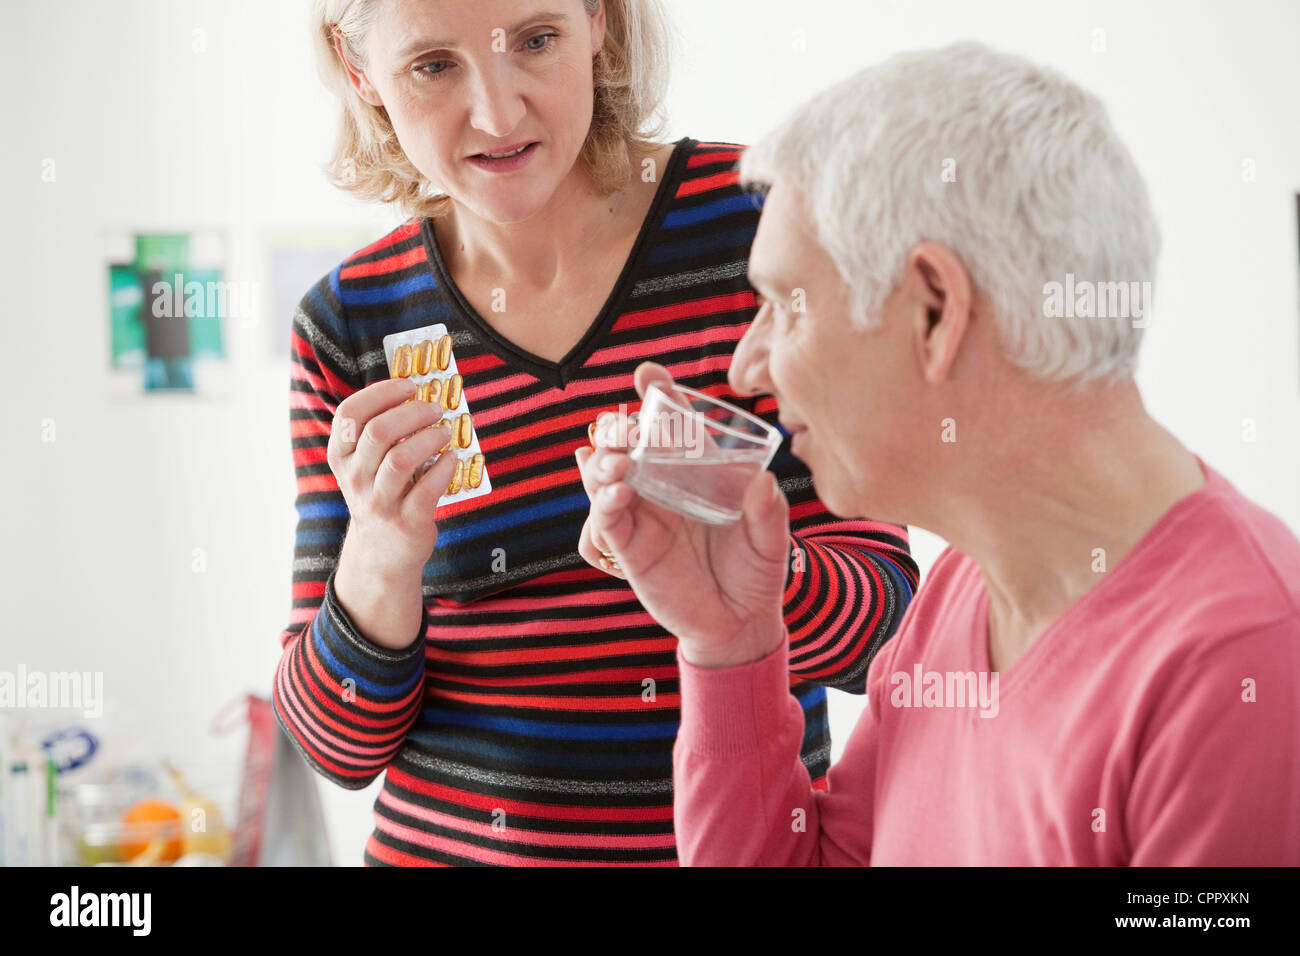 FOOD SUPPLEMENT - Stock Image